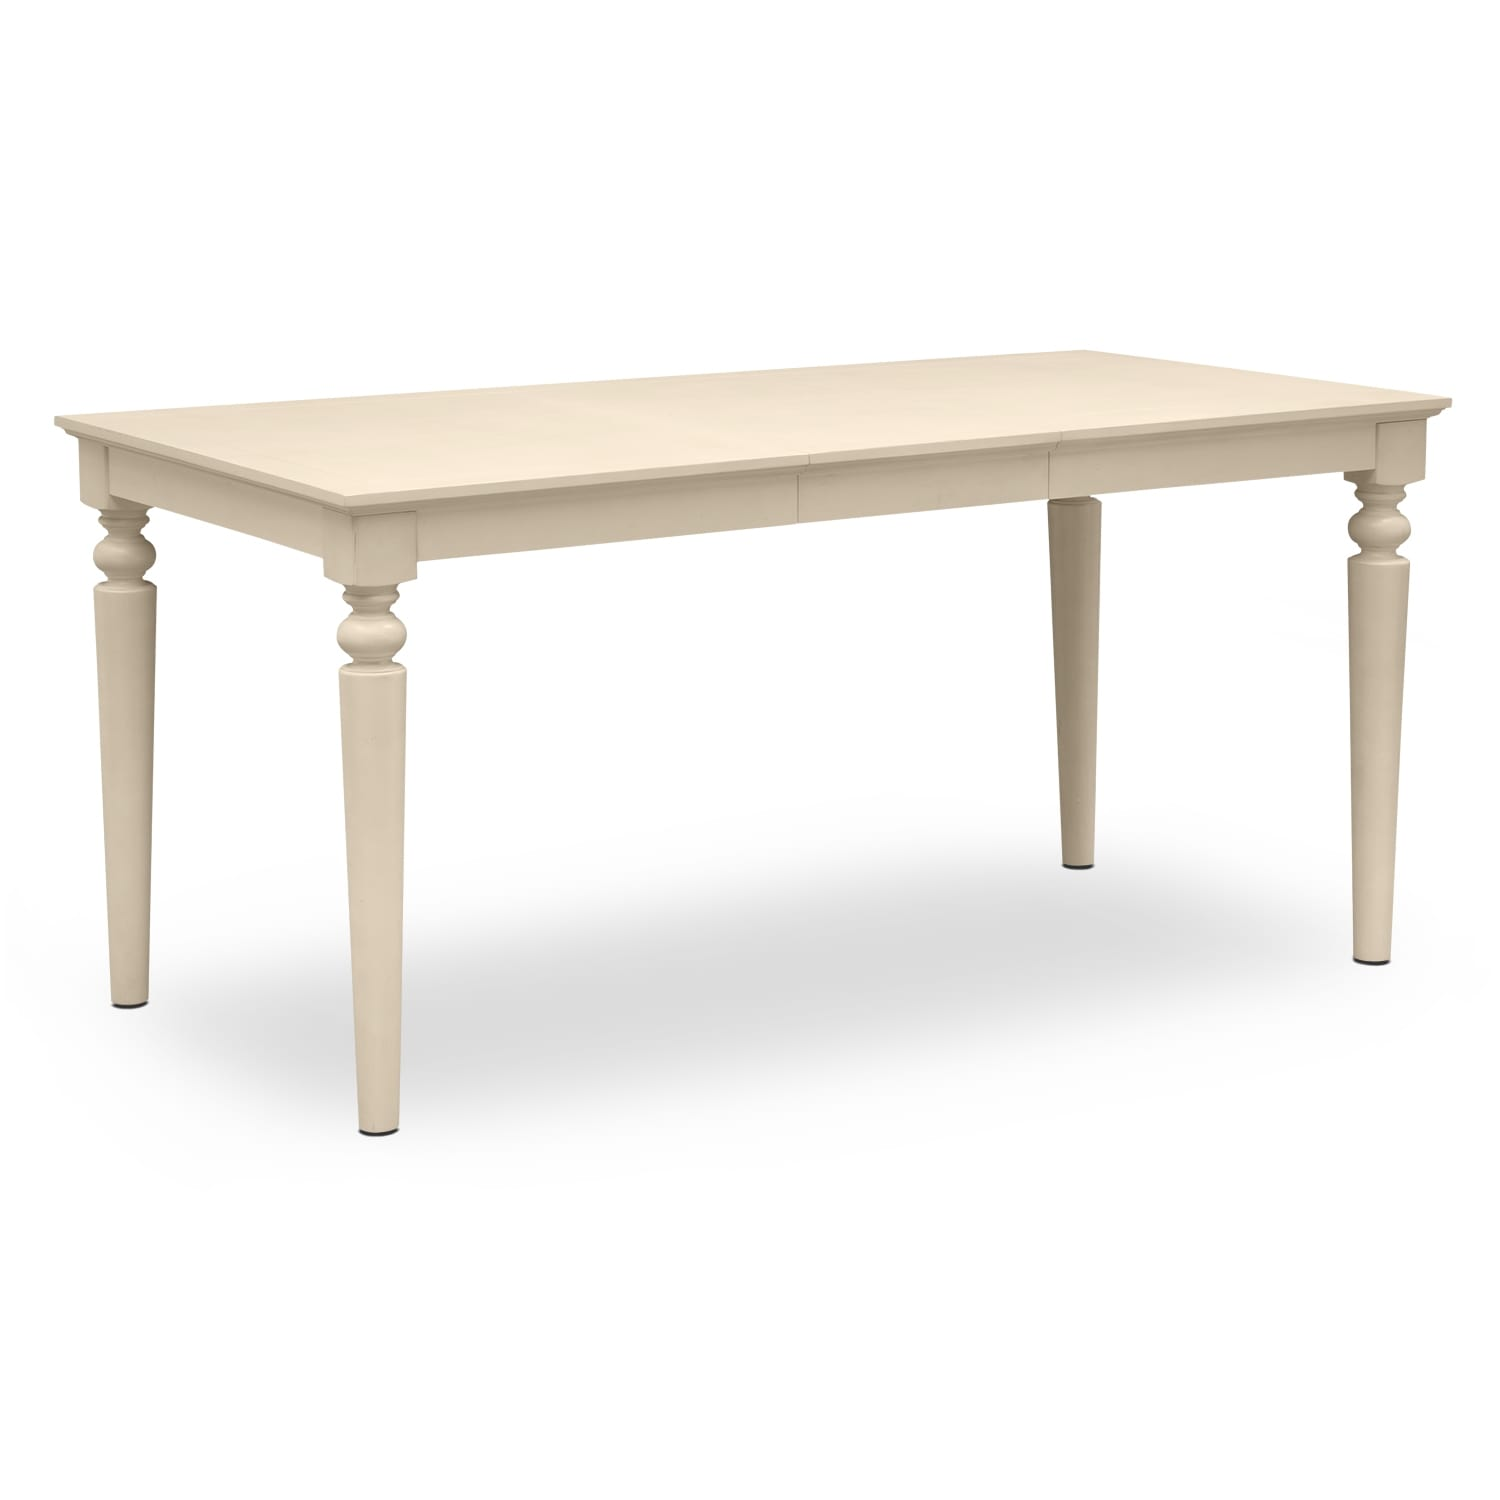 Value City Dining Room Tables Carnival White Ii Dining Room Counter Height Table Value City Pc